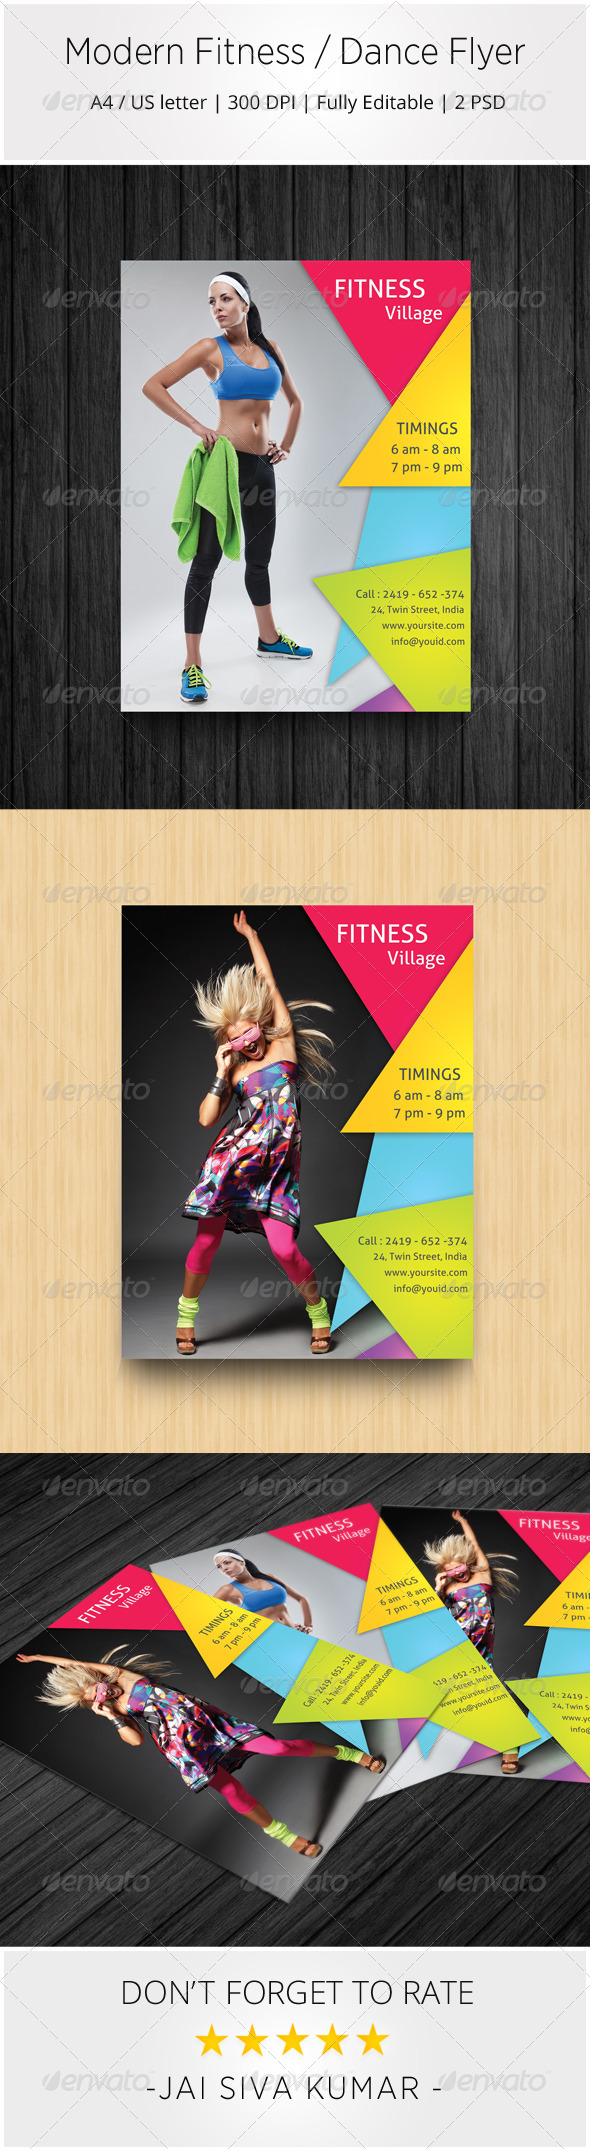 Modern Fitness Dance Flyer